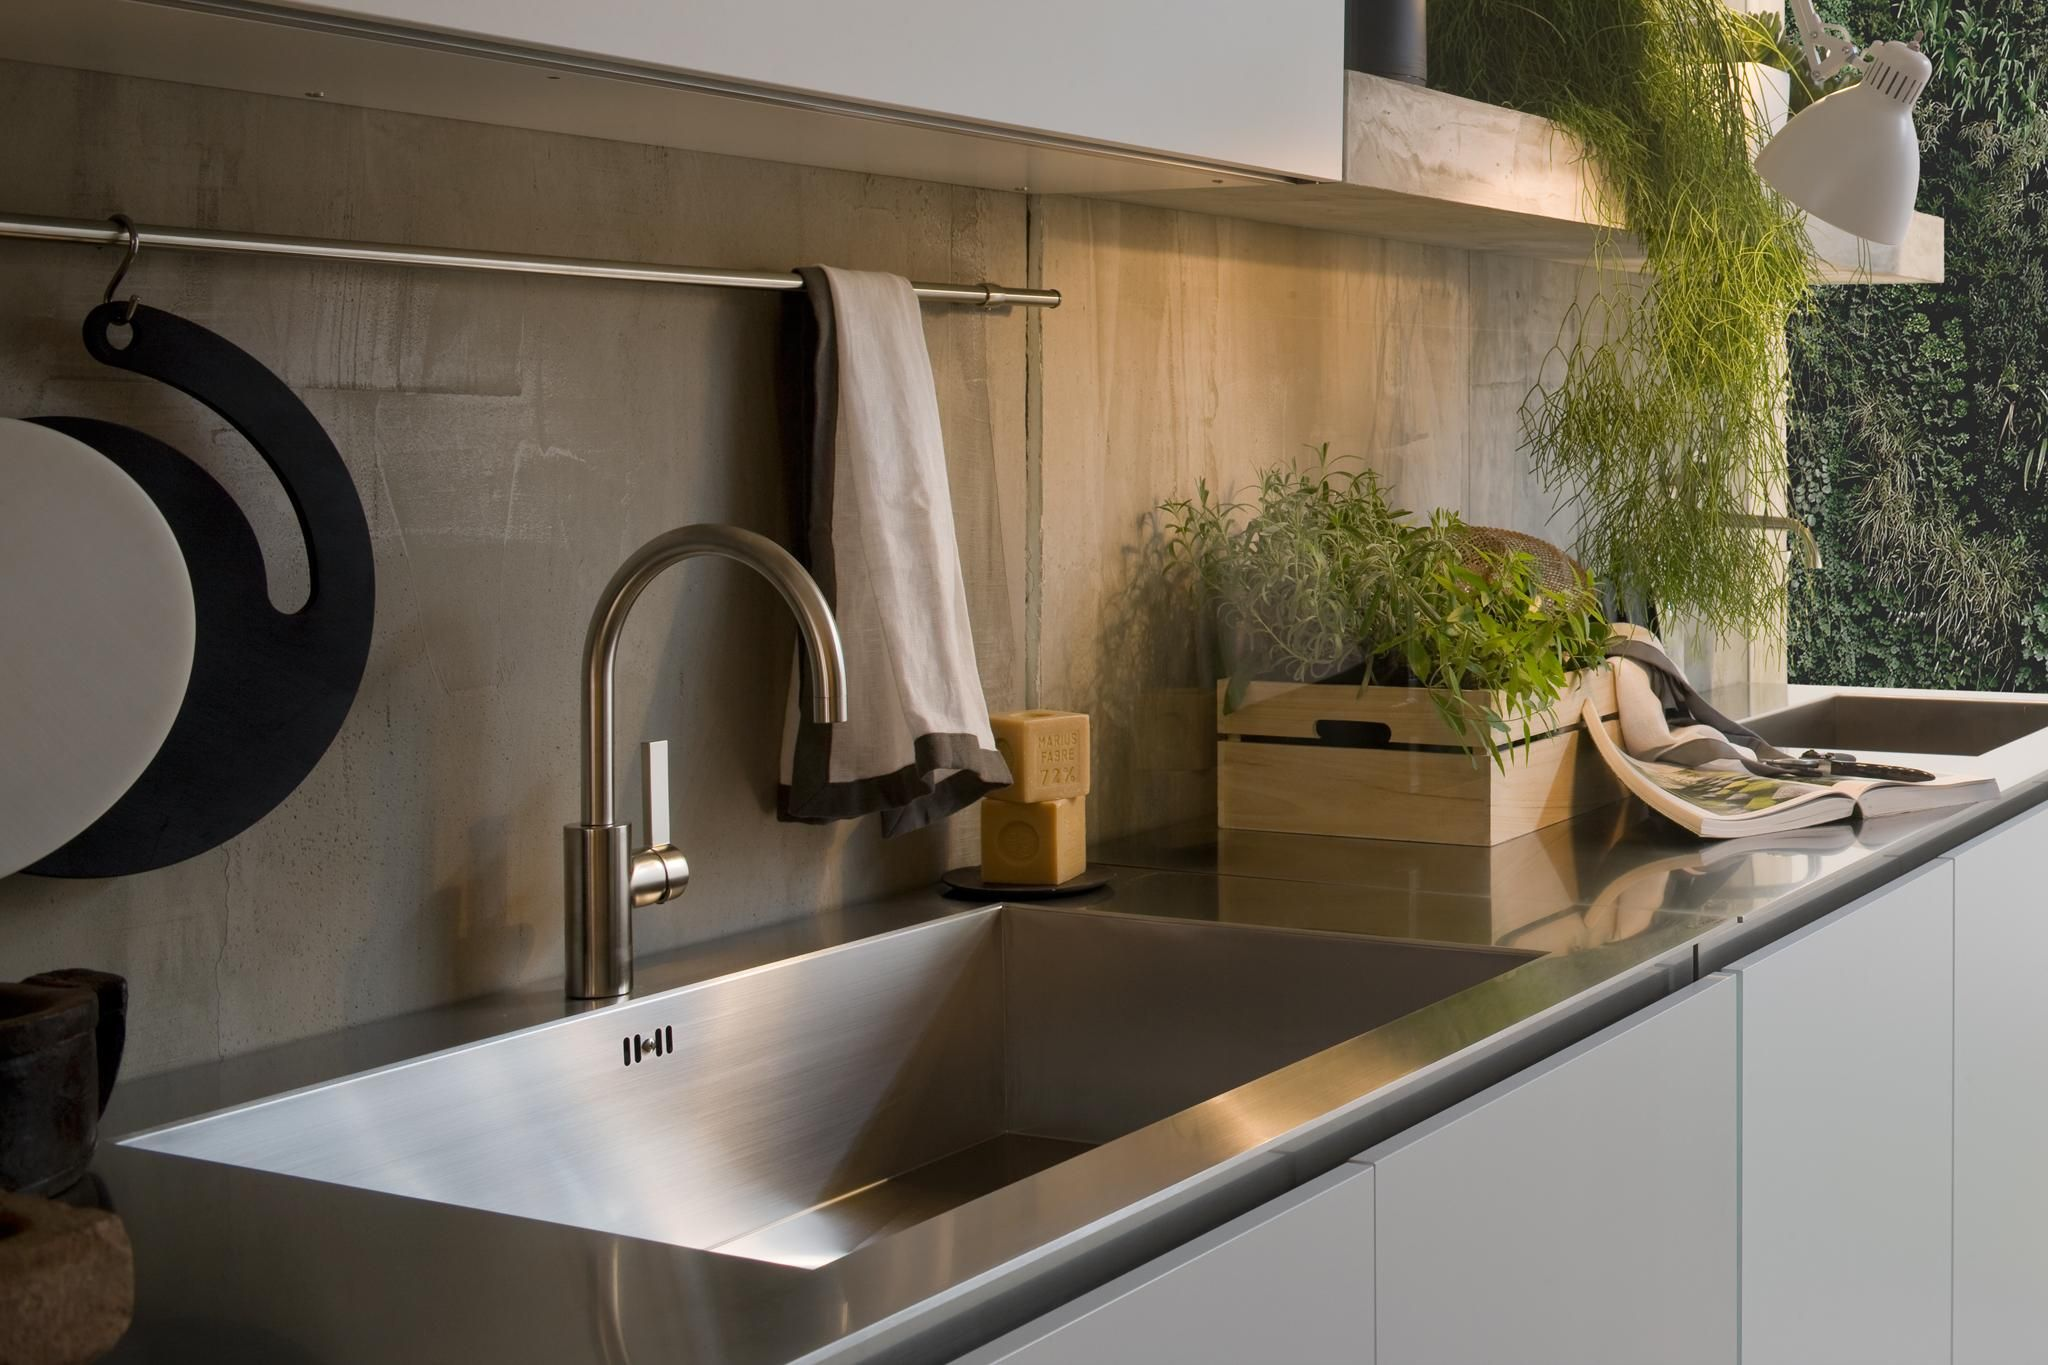 arclinea kitchen sinks and countertop details in modern stainless steel material - Italian Kitchen Design Sinks